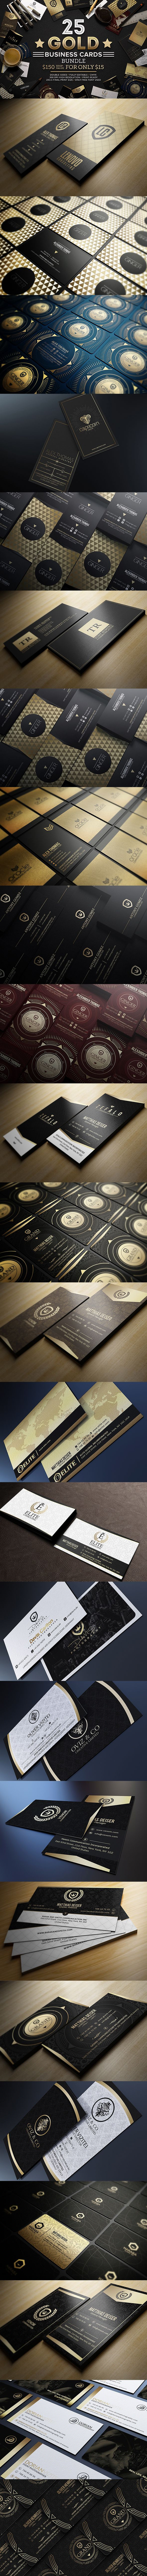 DOWNLOAD HERE: https://creativemarket.com/Marvels/792832-25-Gold-Business-Cards-Bundle?u=Marvels     This business card bundle contains 25 High Quality business card templates. Each Business card is fully customizable and come in a well organized .PSD file (PHOTOSHOP). All texts are editable and colors can be easily change to whatever you may want. All fonts used in this template are free and the fonts download links can be found inside the help file